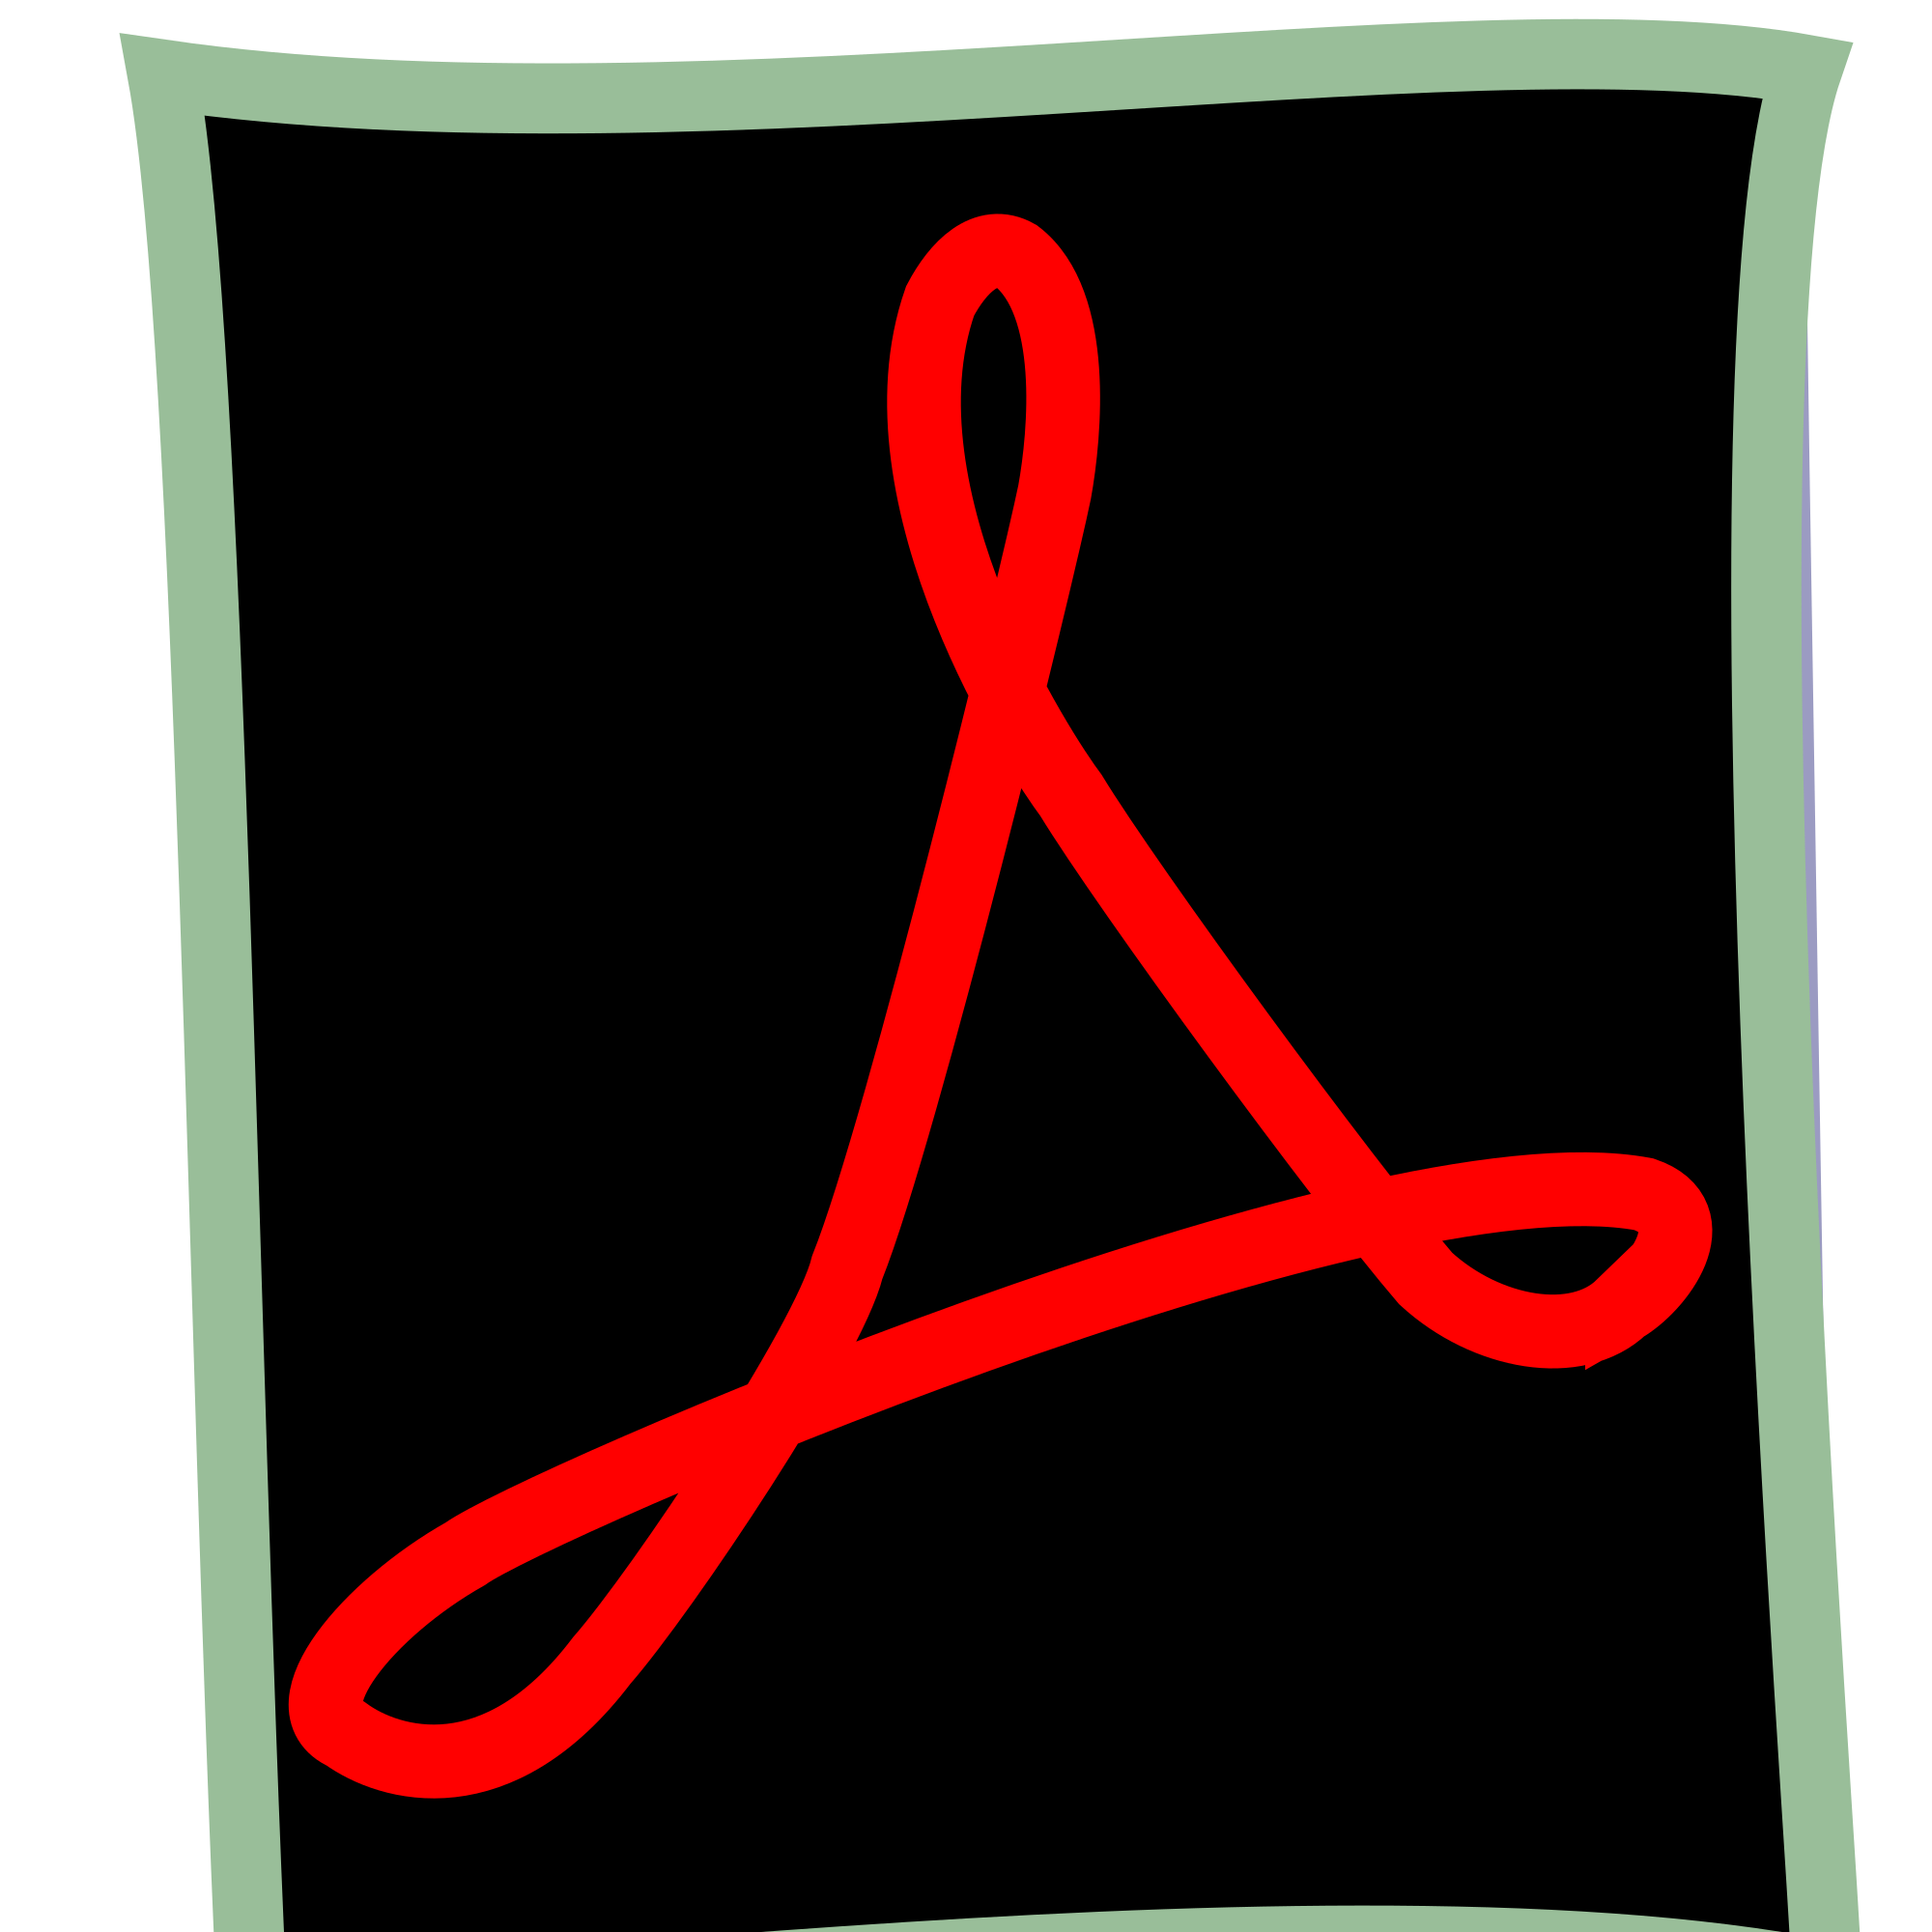 Svg reader adobe. File acrobat wikimedia commons